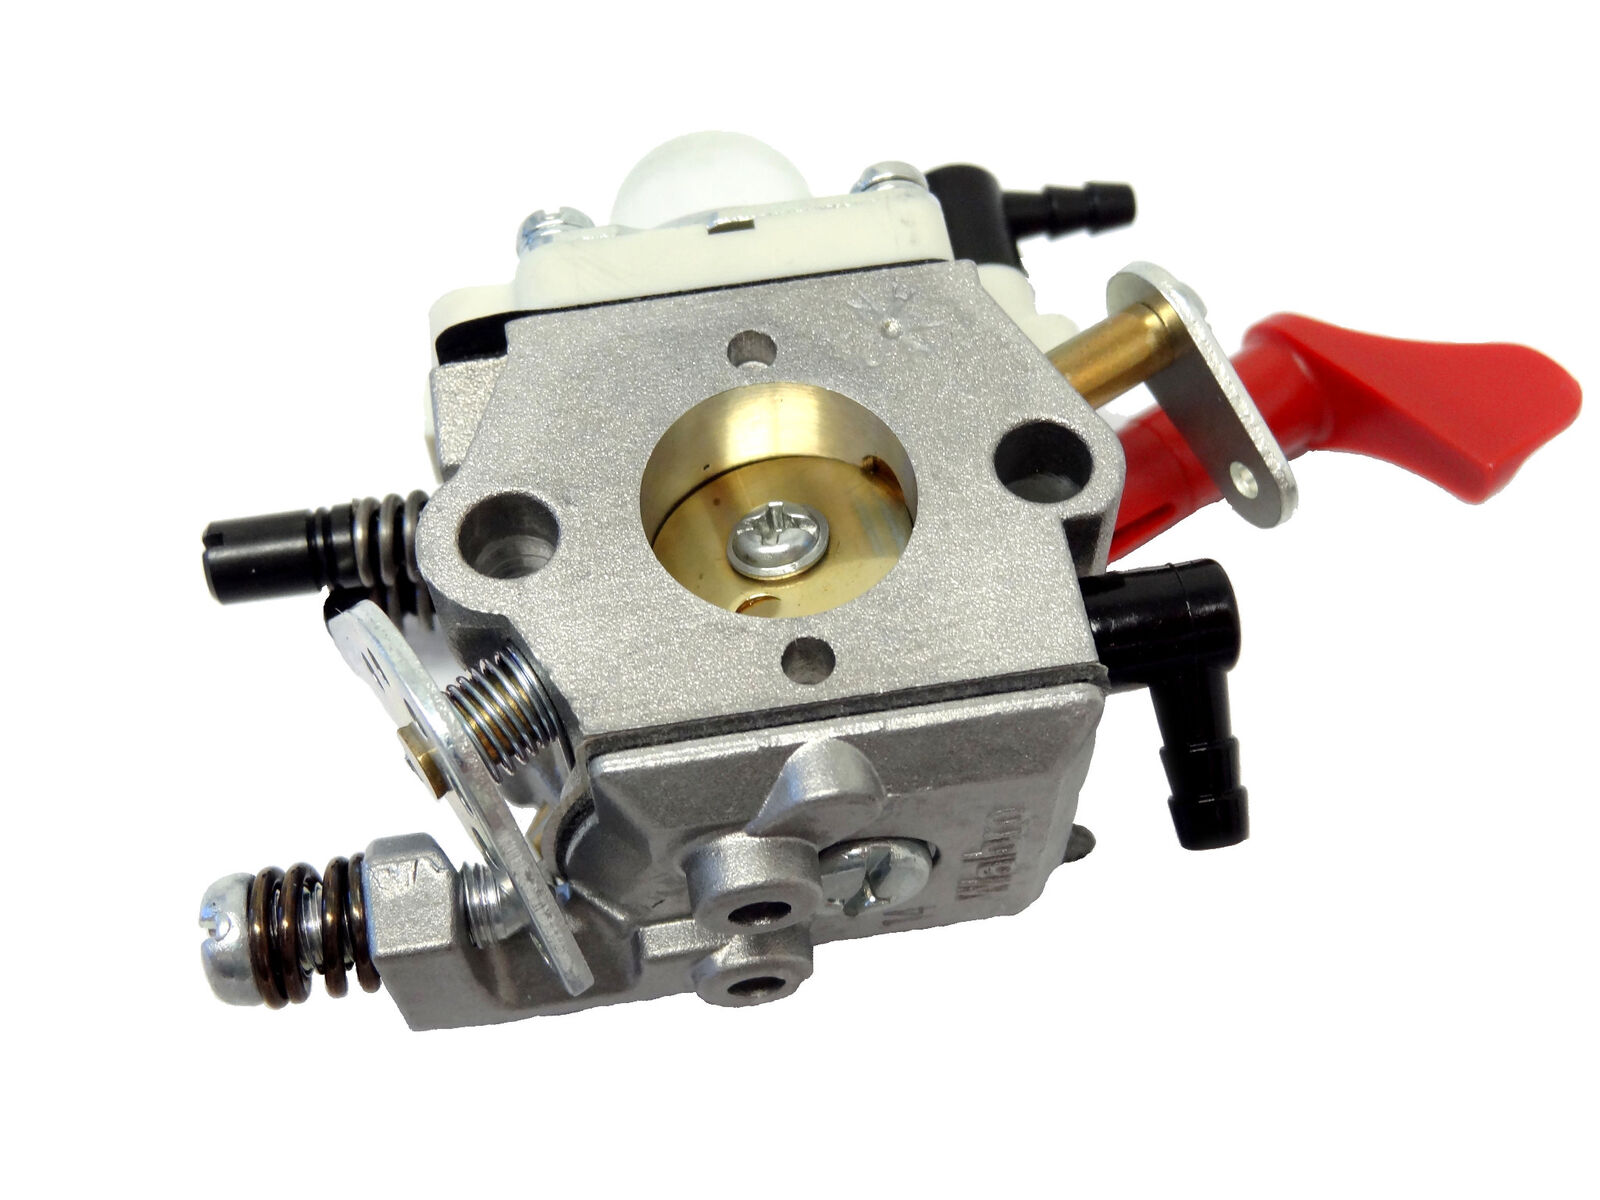 Walbro Carburetor WT-1191 Fits HPI Baja Rovan King Motor RC engines 32cc to 38cc